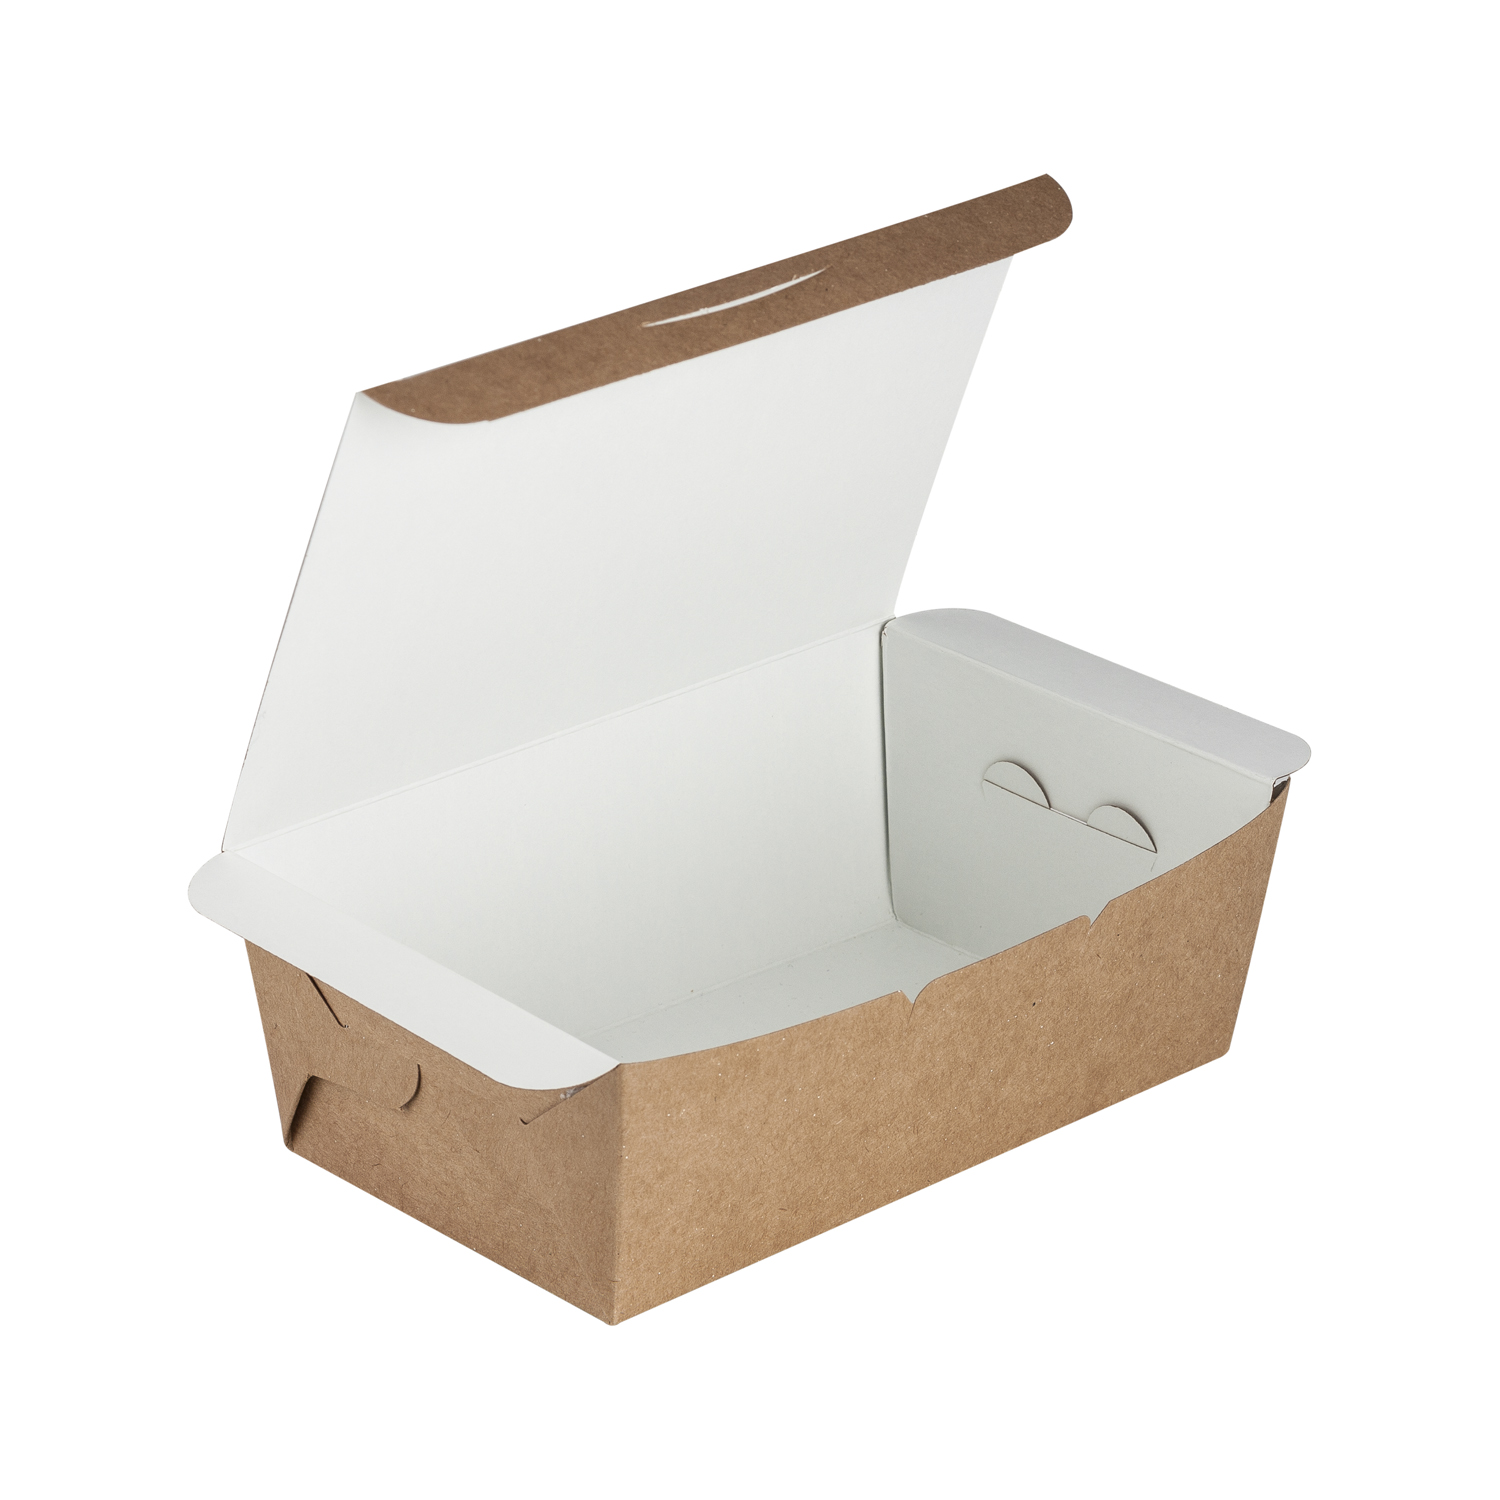 Meal Boxes